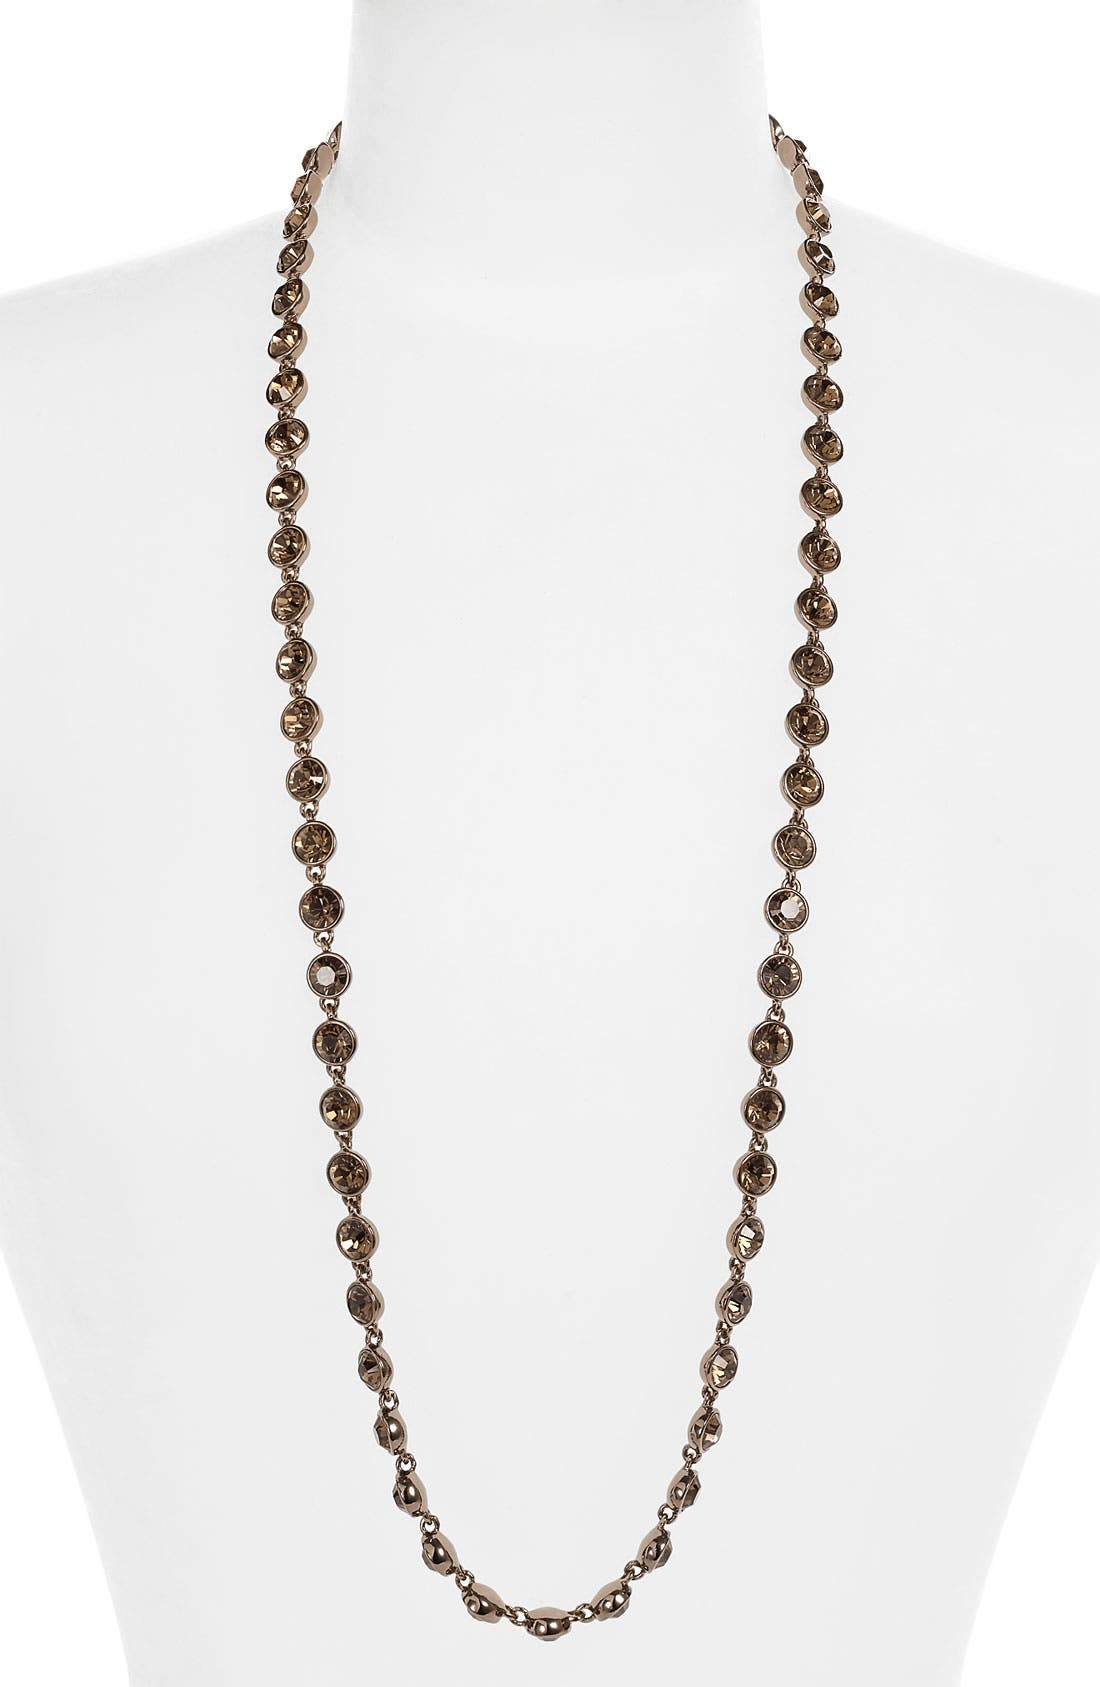 Main Image - Givenchy Crystal Station Long Necklace (Nordstrom Exclusive)